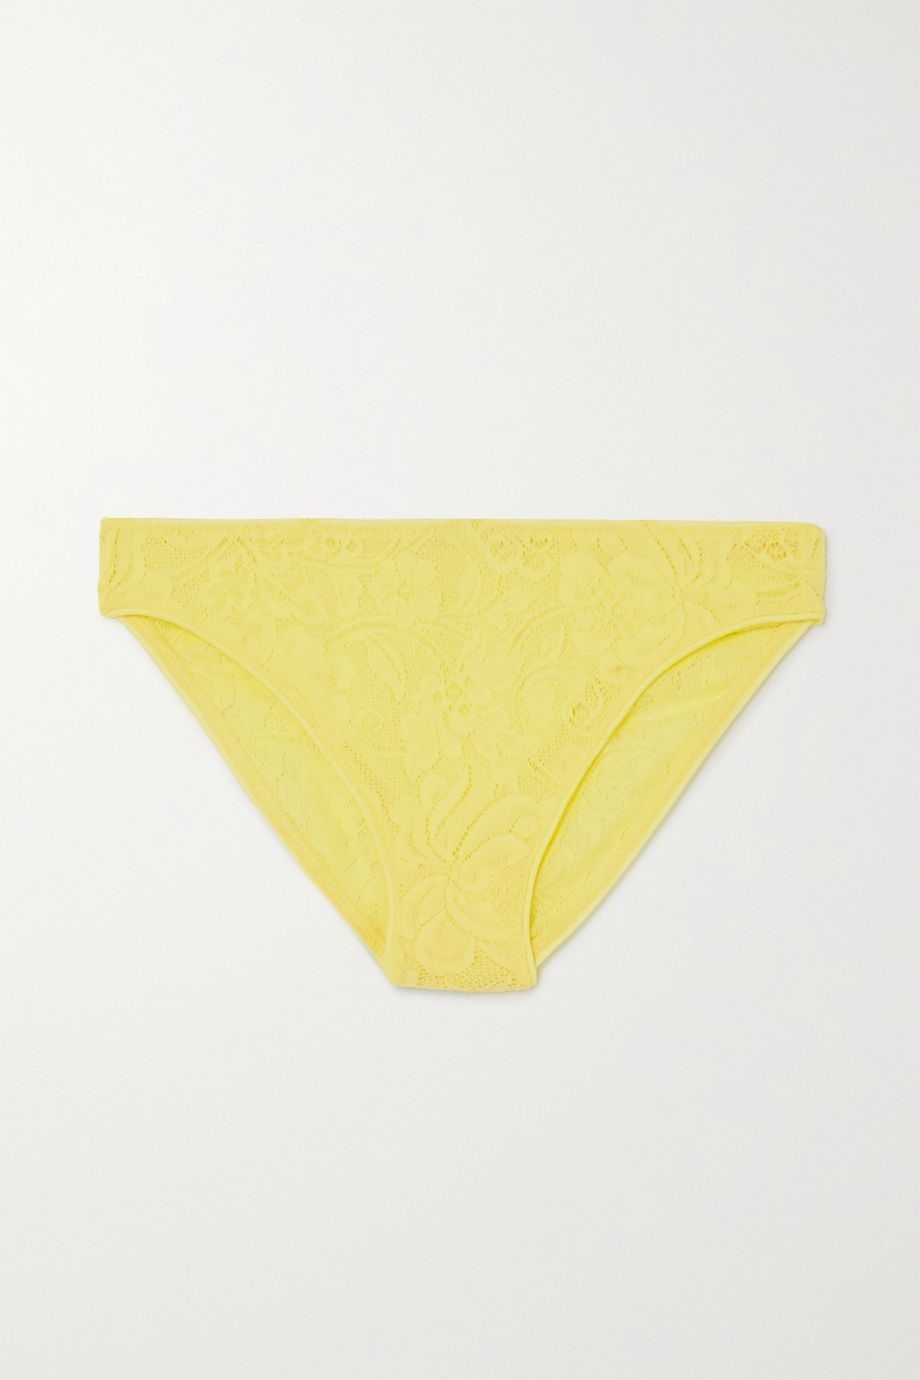 Araks + NET SUSTAIN Tris stretch-lace briefs